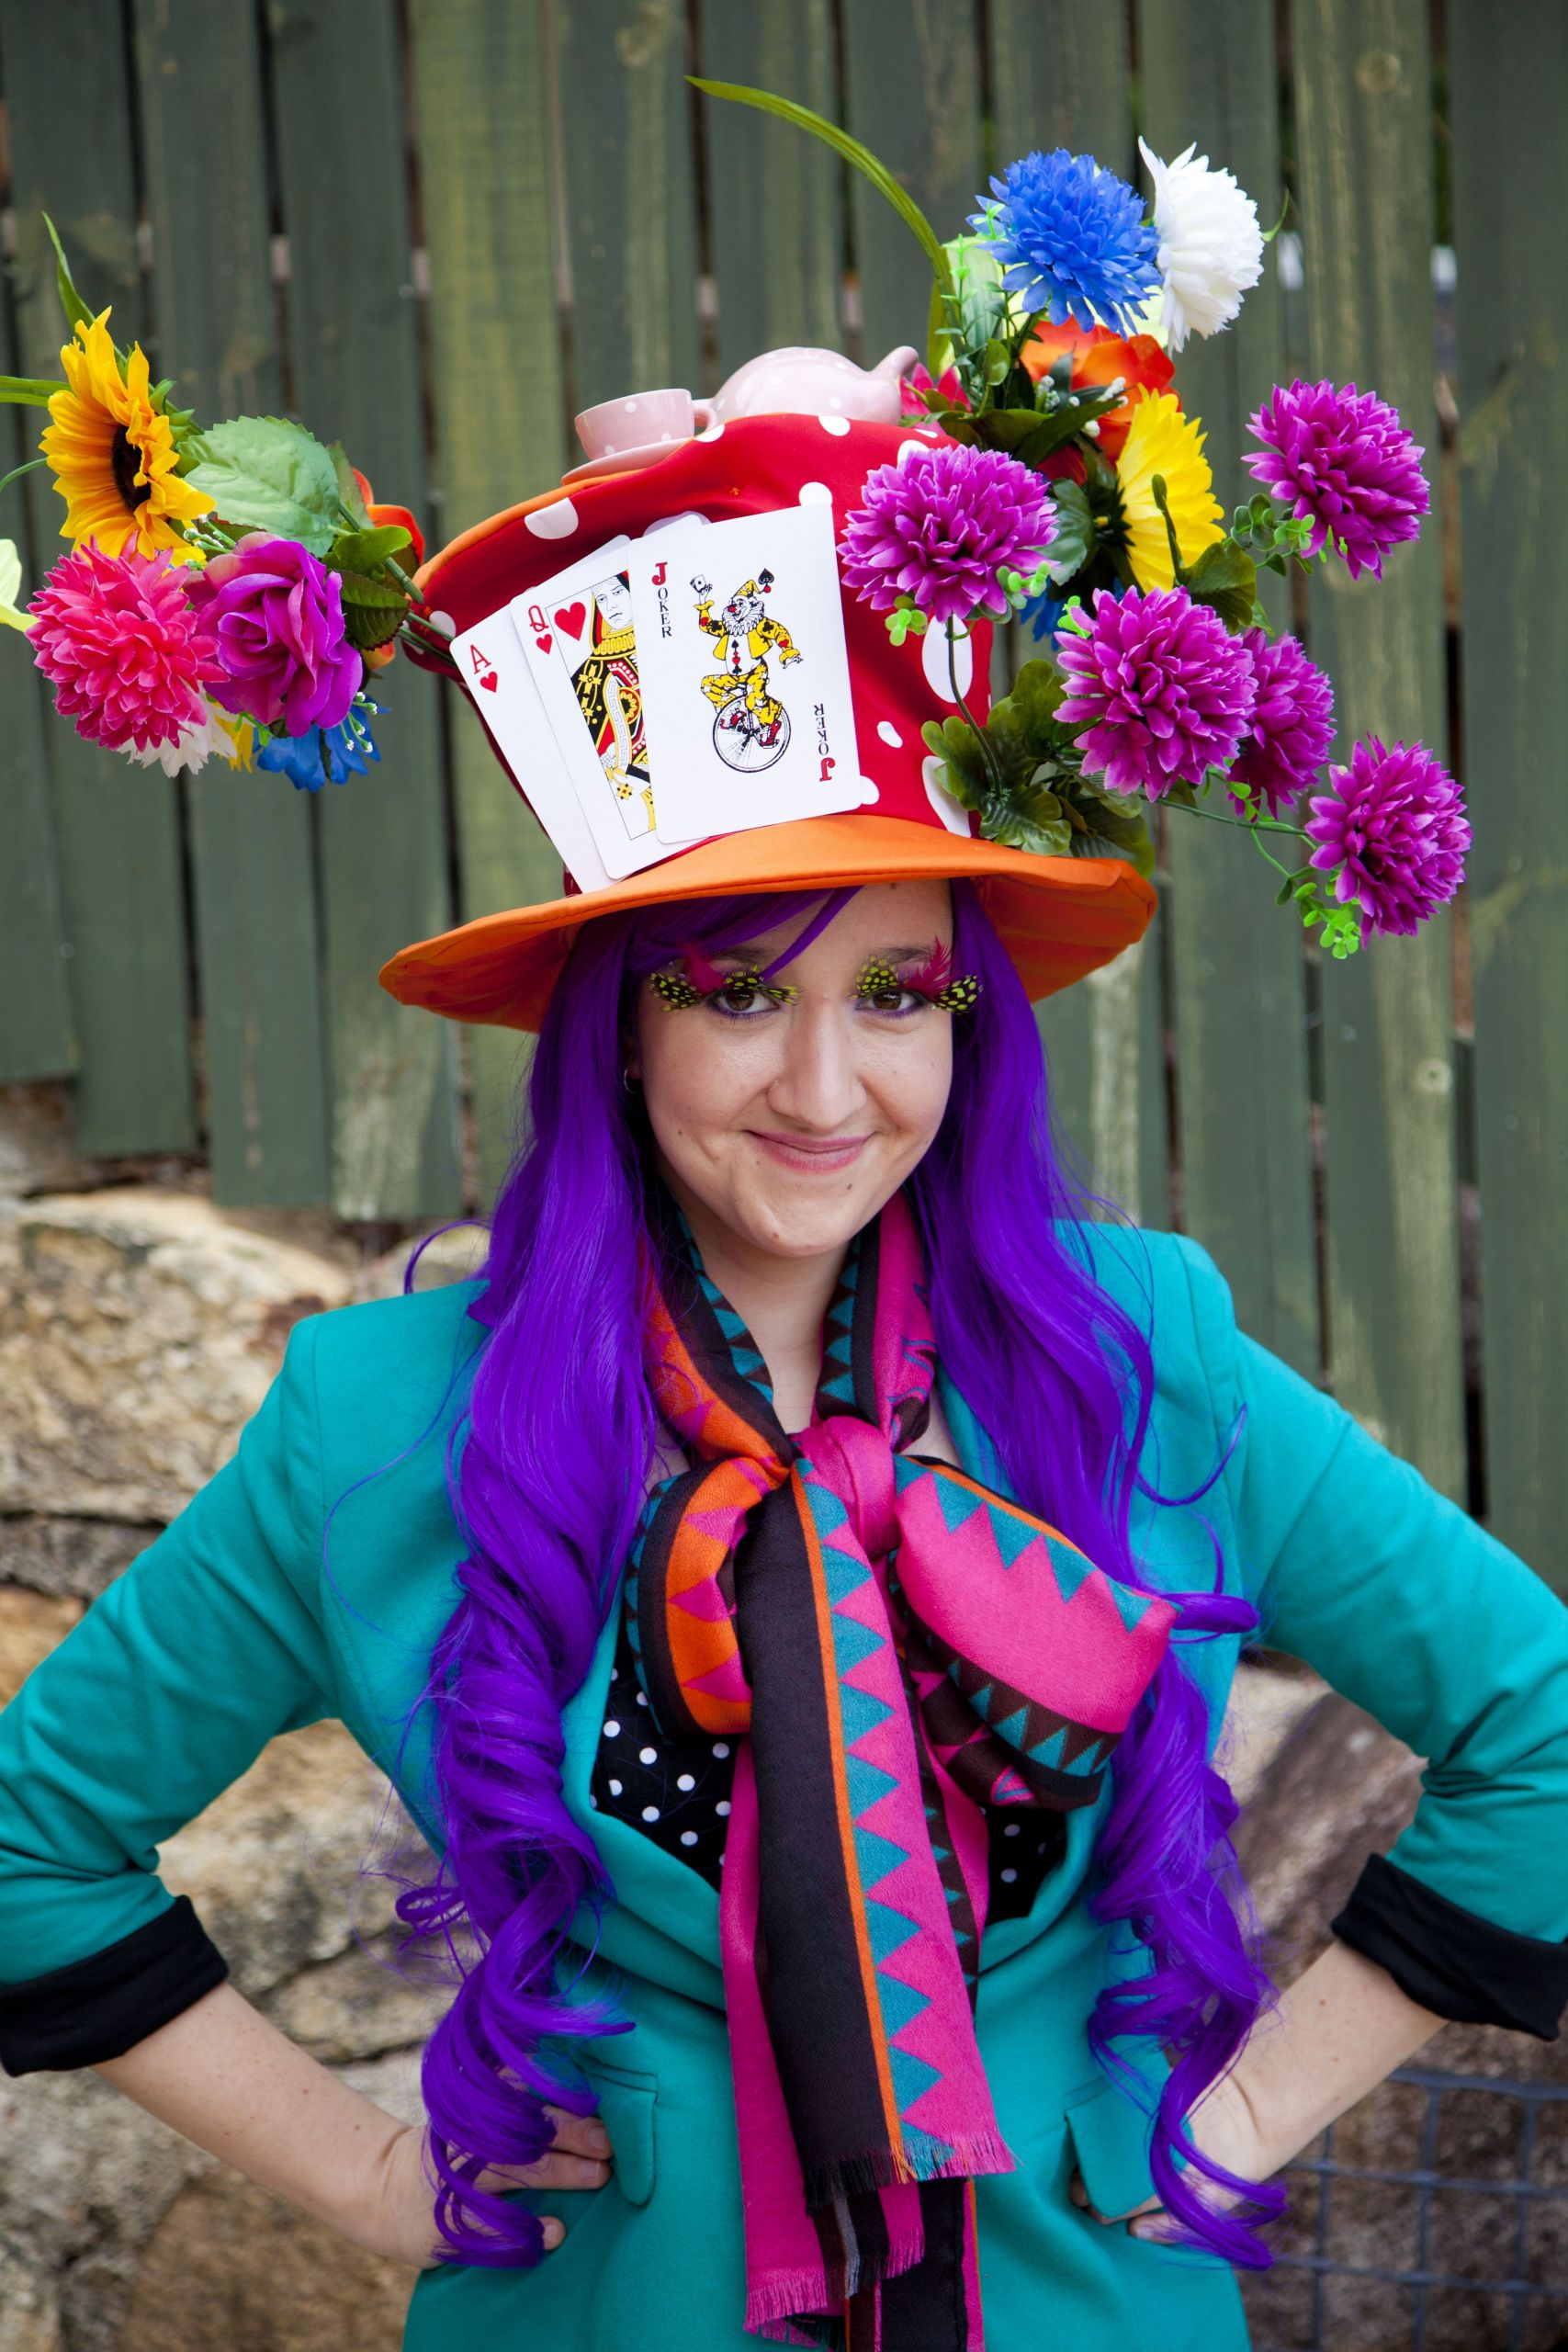 Mad Hatter Tea Party Costume Ideas  My Mad Hatter Costume